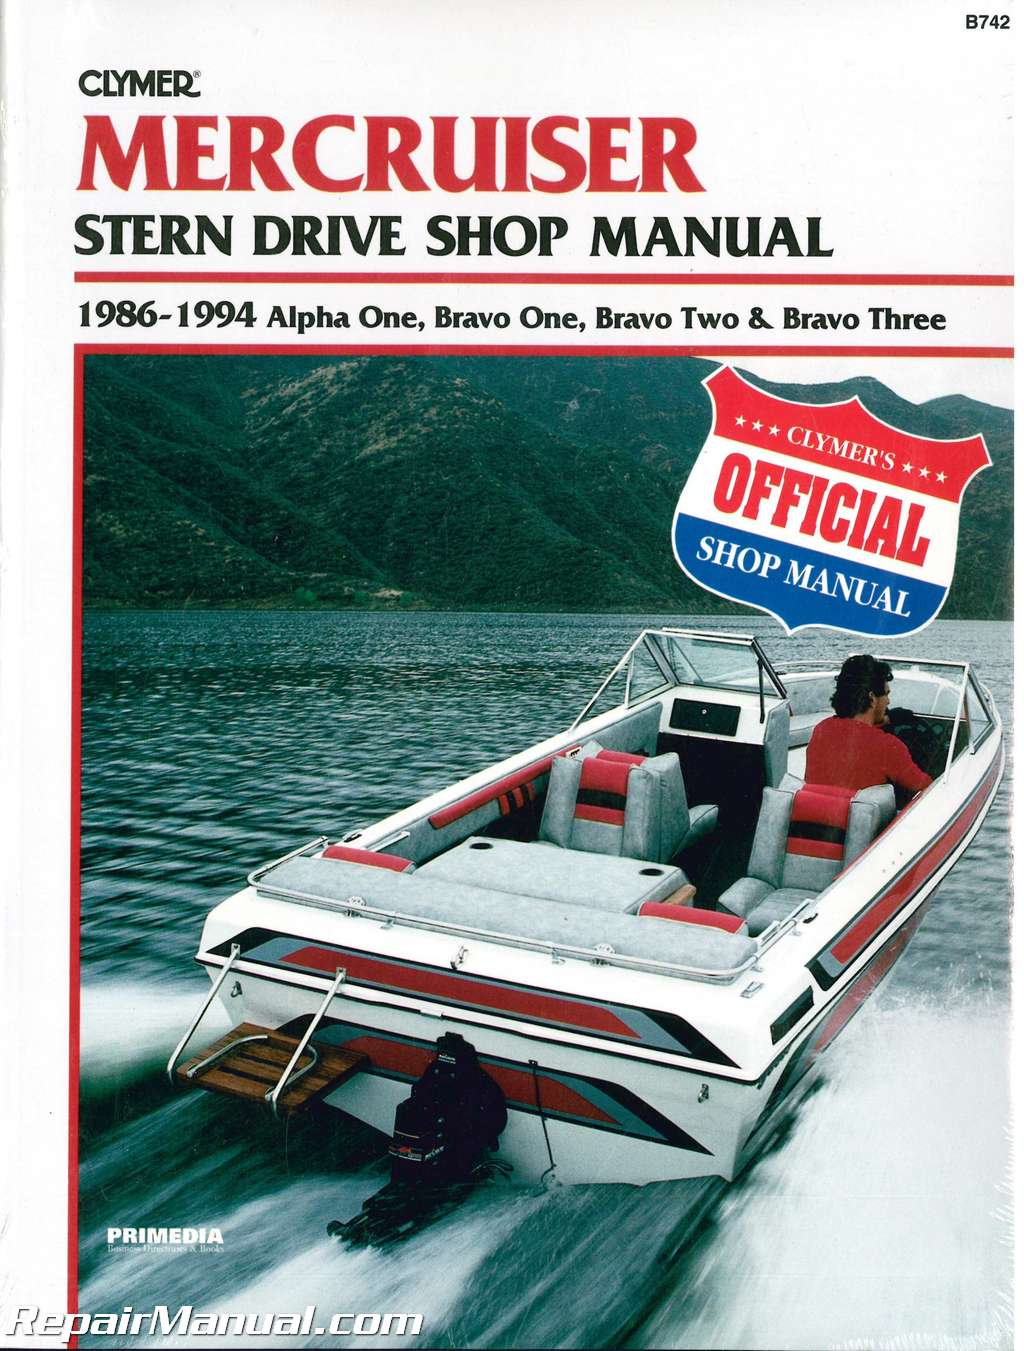 mercruiser alpha one bravo one bravo two bravo three 1986 1994 rh repairmanual com Mercruiser Bravo 2 Parts mercruiser bravo 2 manual